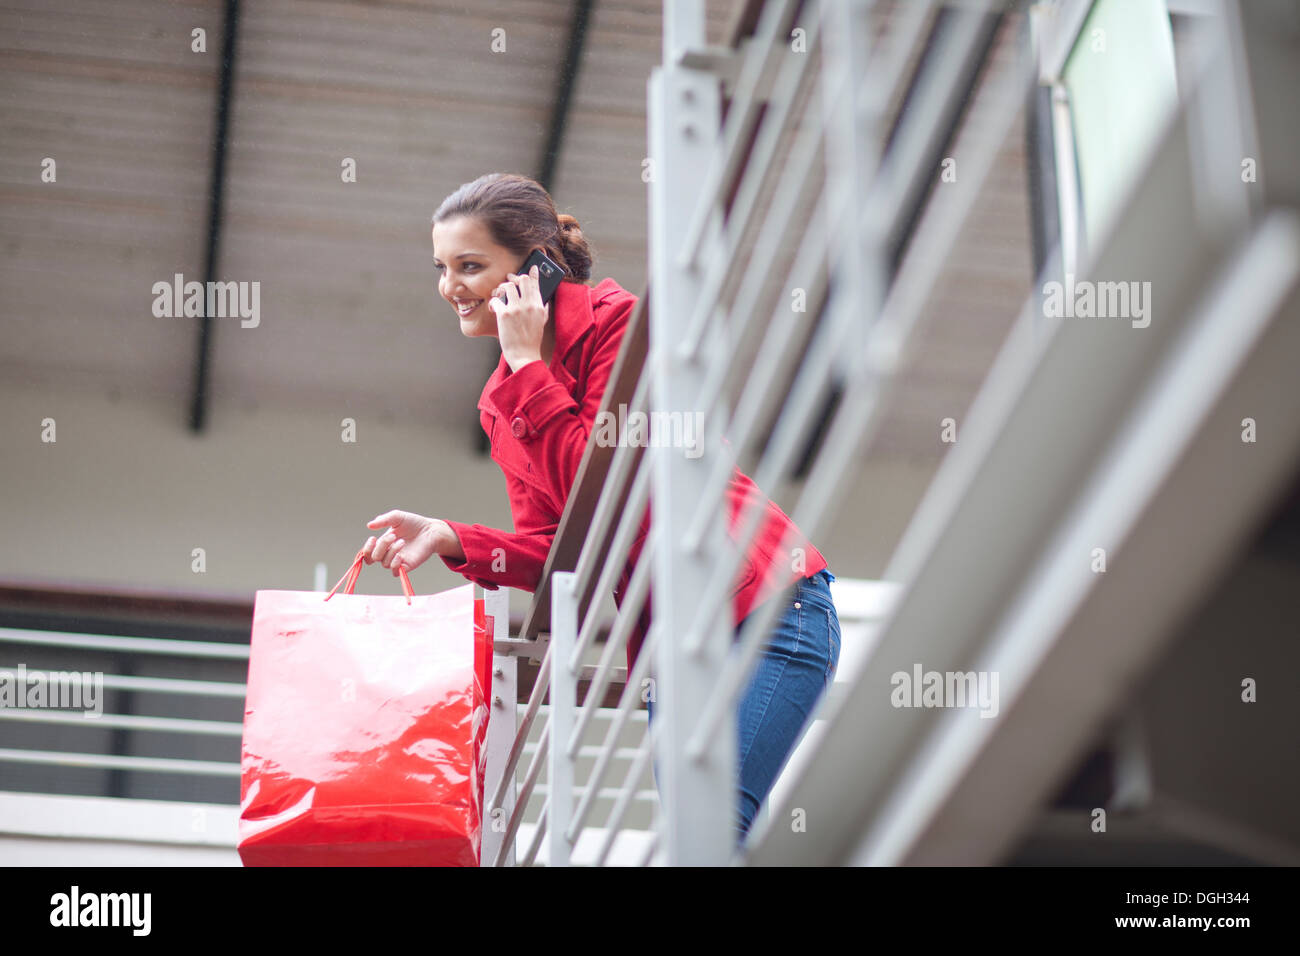 Young woman on cellphone in shopping mall - Stock Image